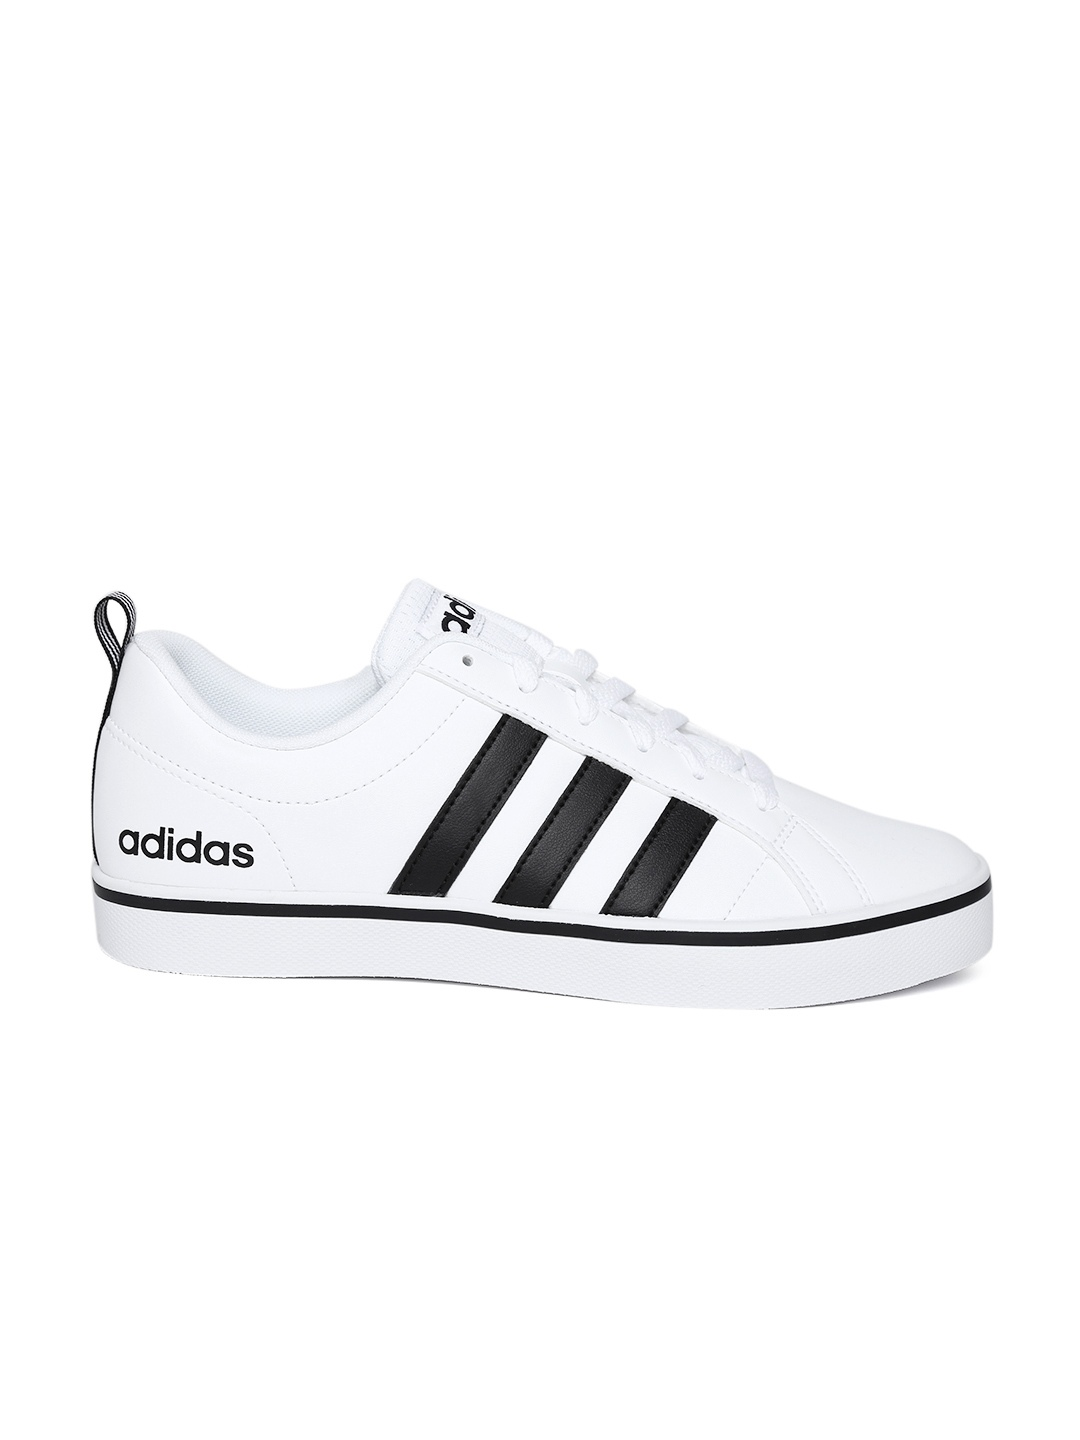 adidas neo shoes buy online